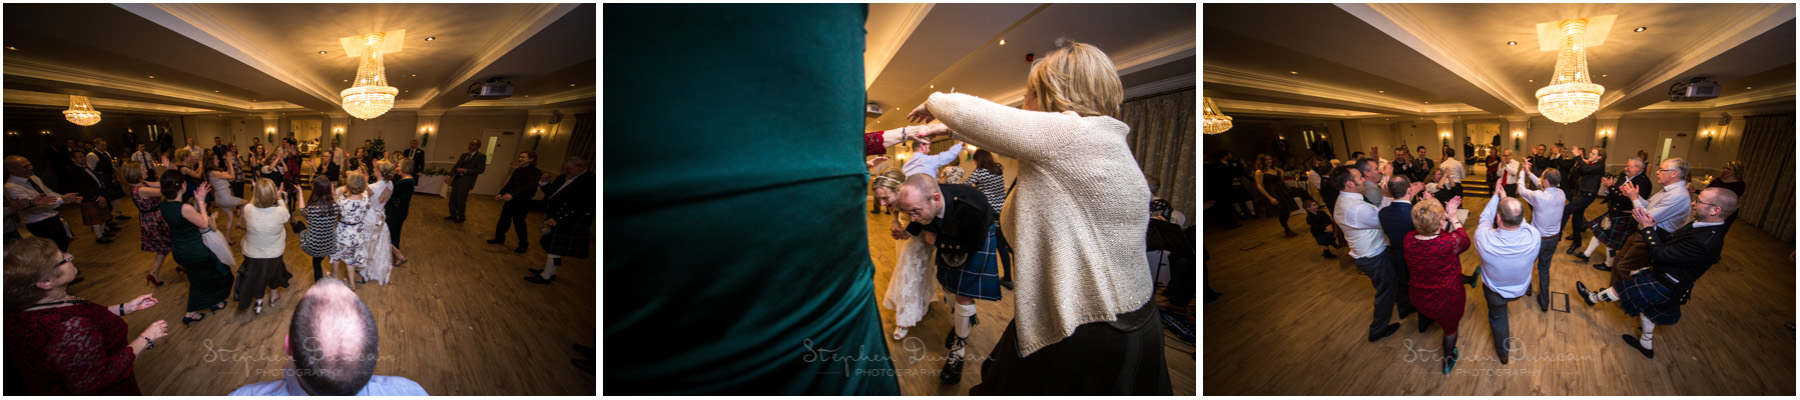 Romsey Abbey wedding photographer guests dancing